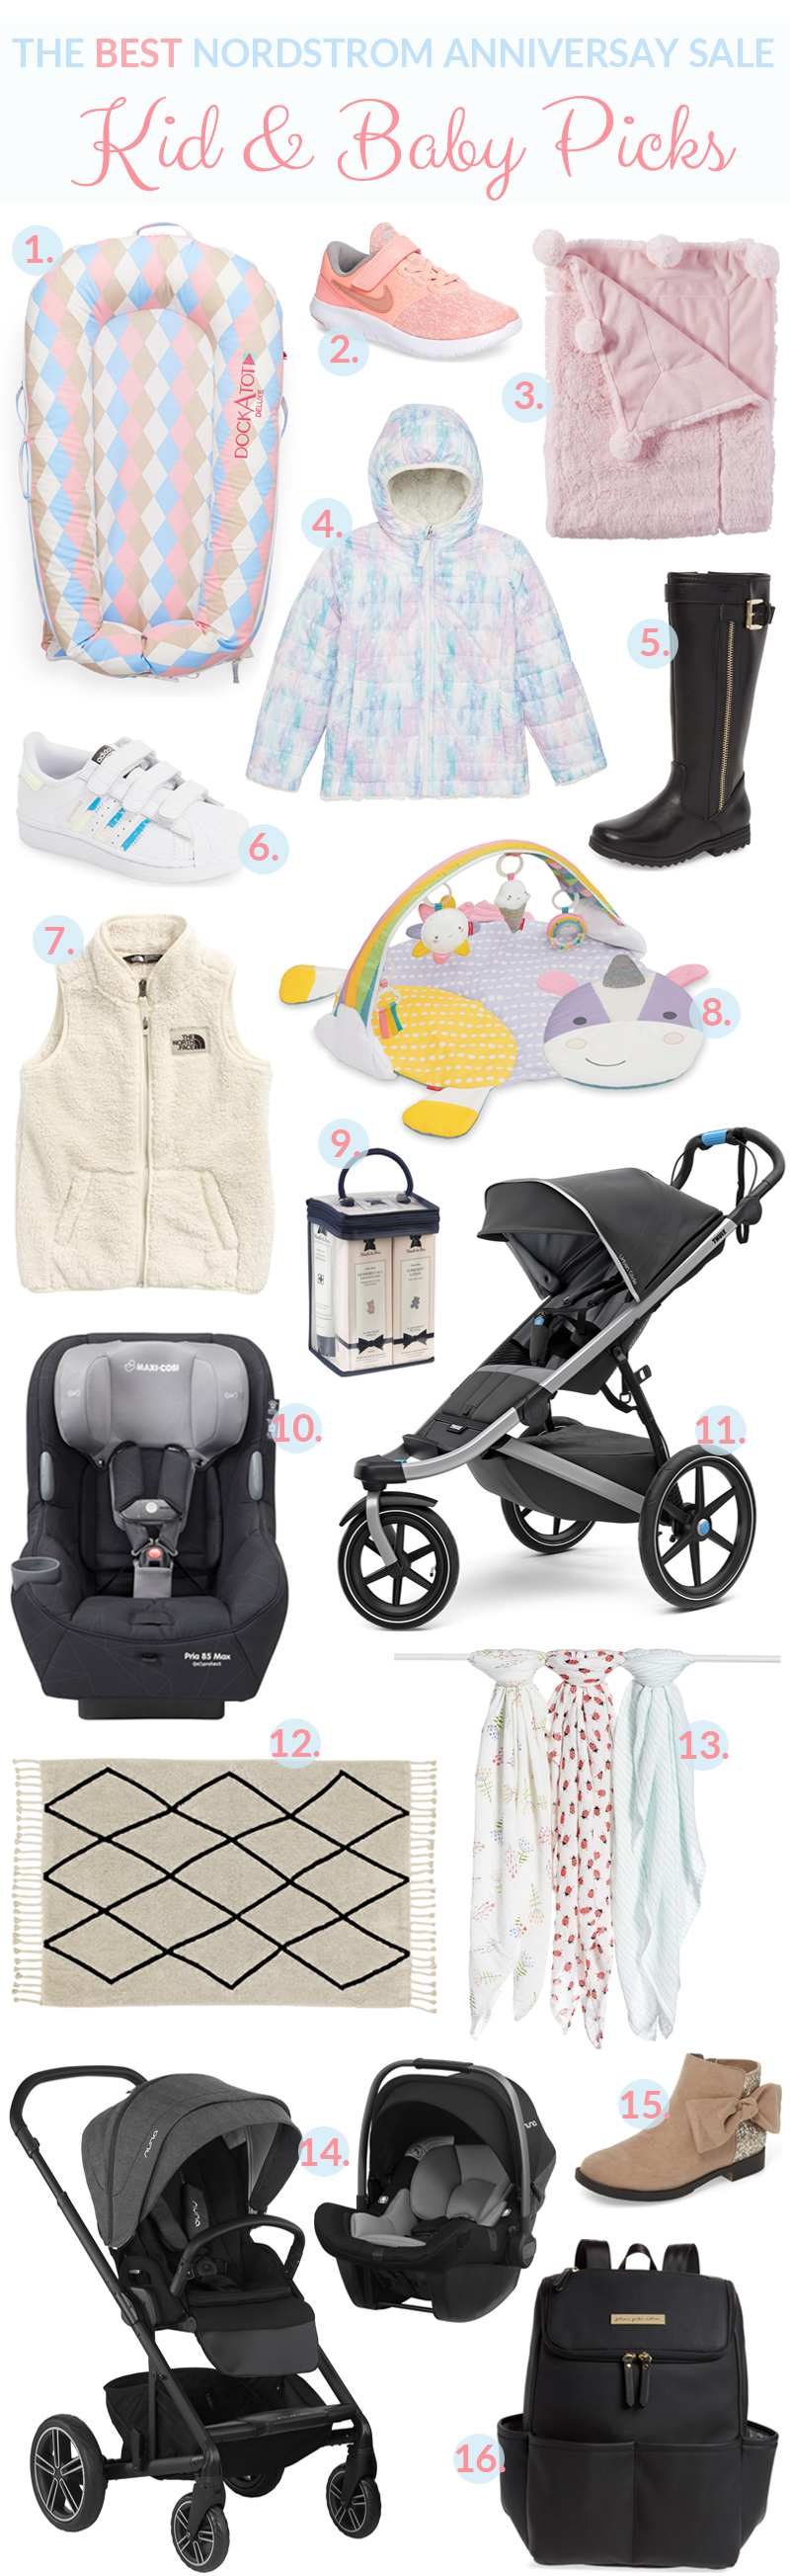 The Best Nordstrom Anniversary Sale Kid & Baby Picks